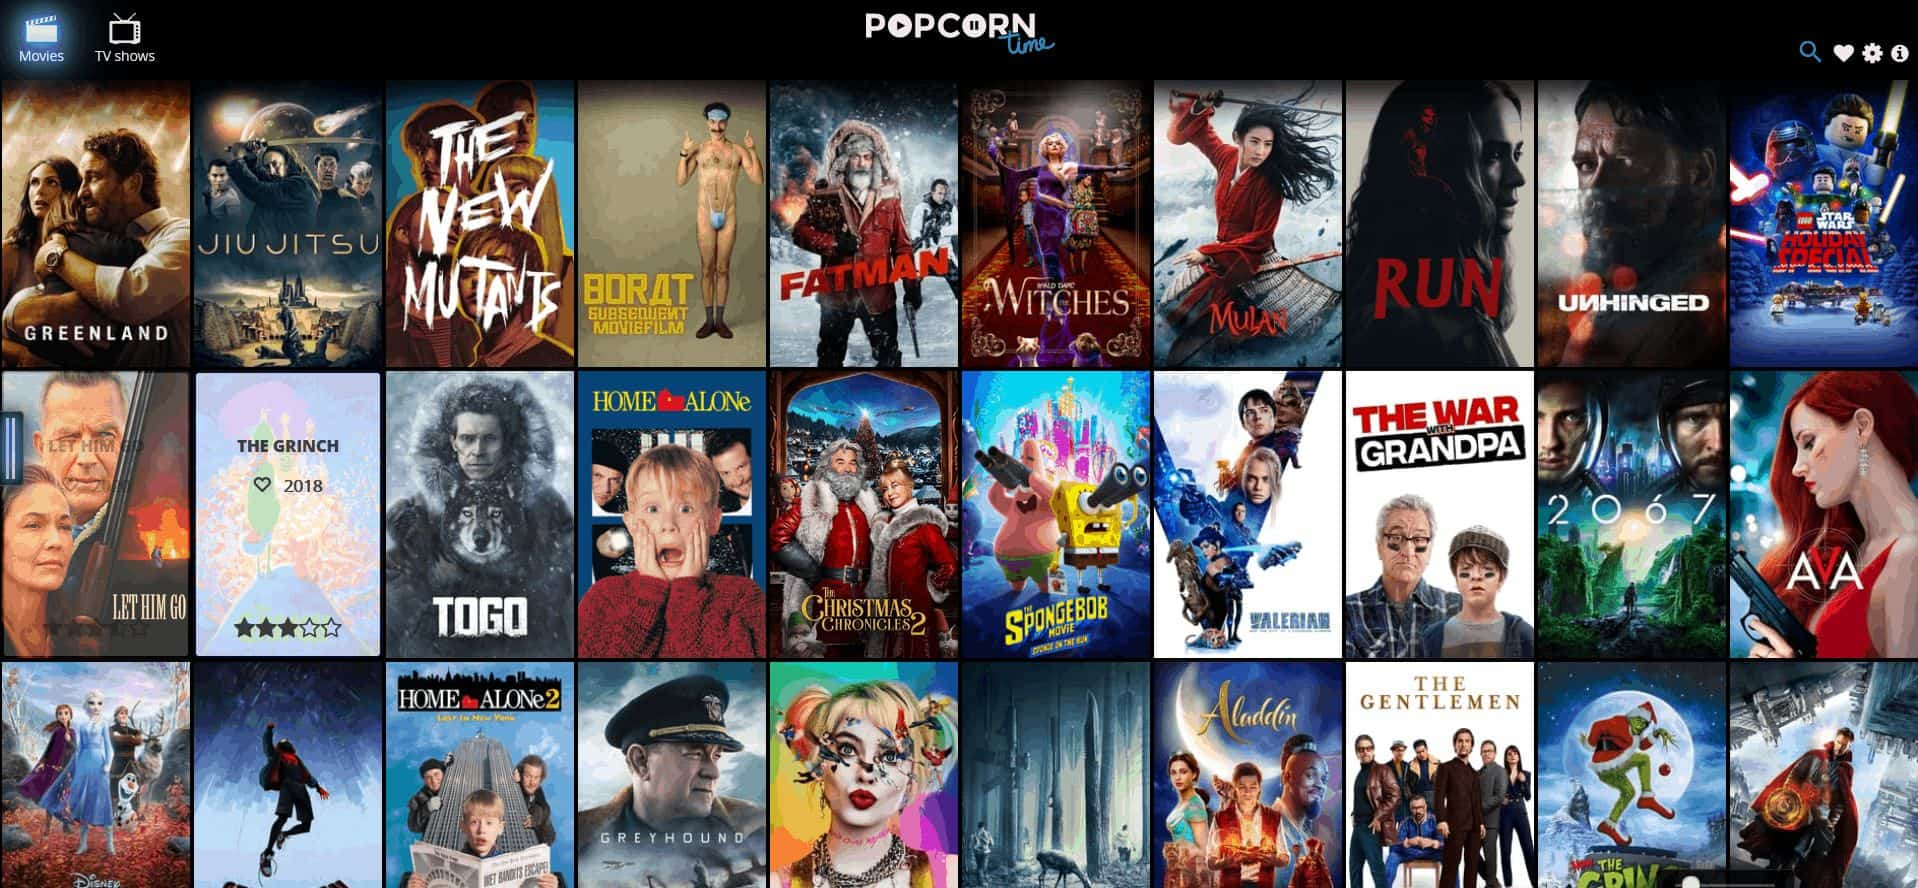 Coke And Popcorn Alternatives – Top Free Movie Site for English